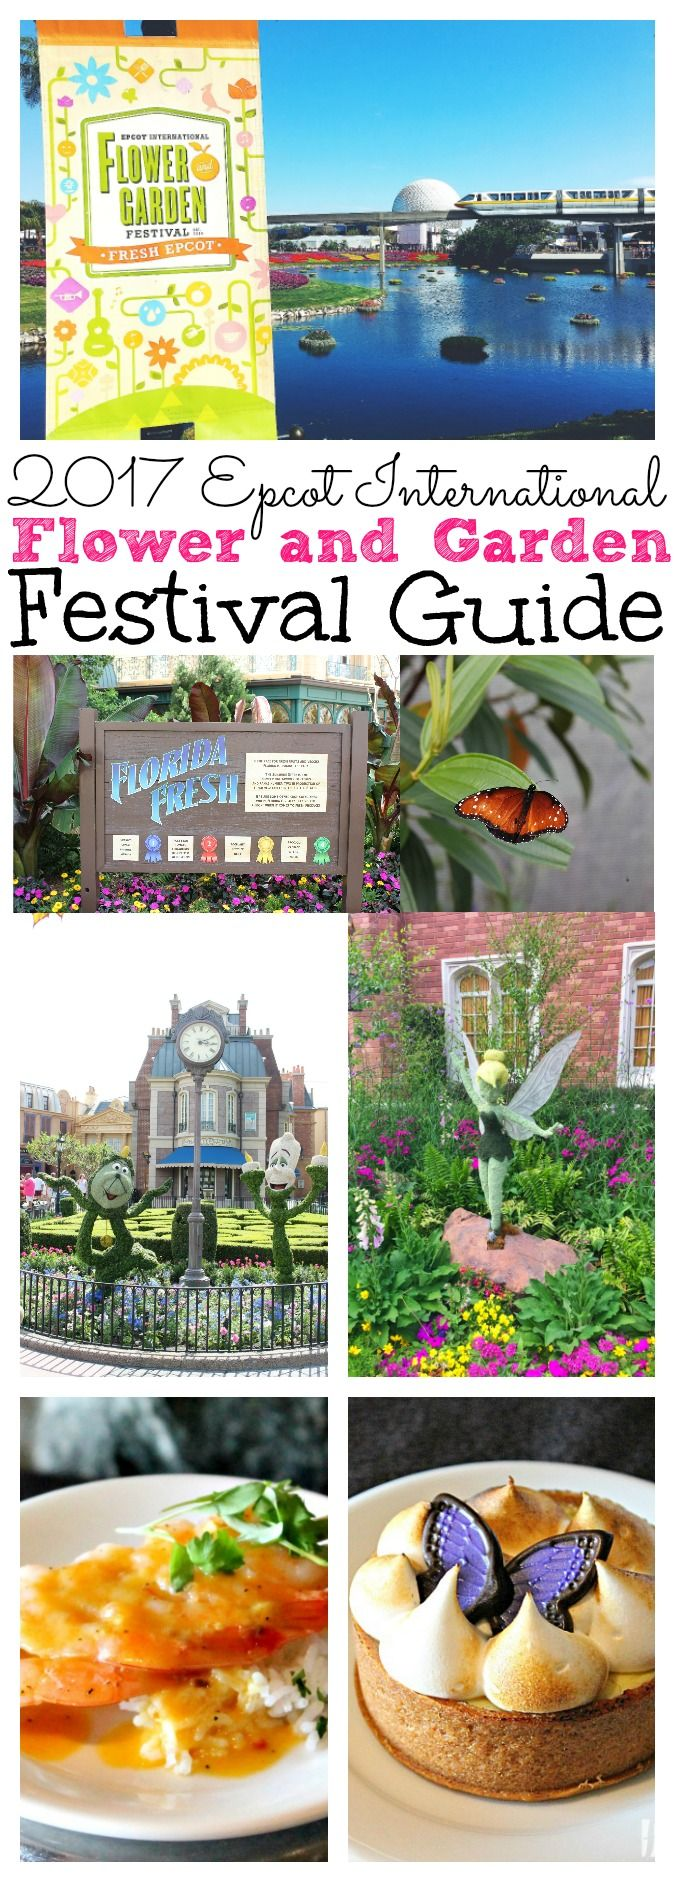 2017 Epcot International Flower and Garden Festival going on right now! Check out our guide to this year's food, topiaries, and events! - abccreativelearning.com